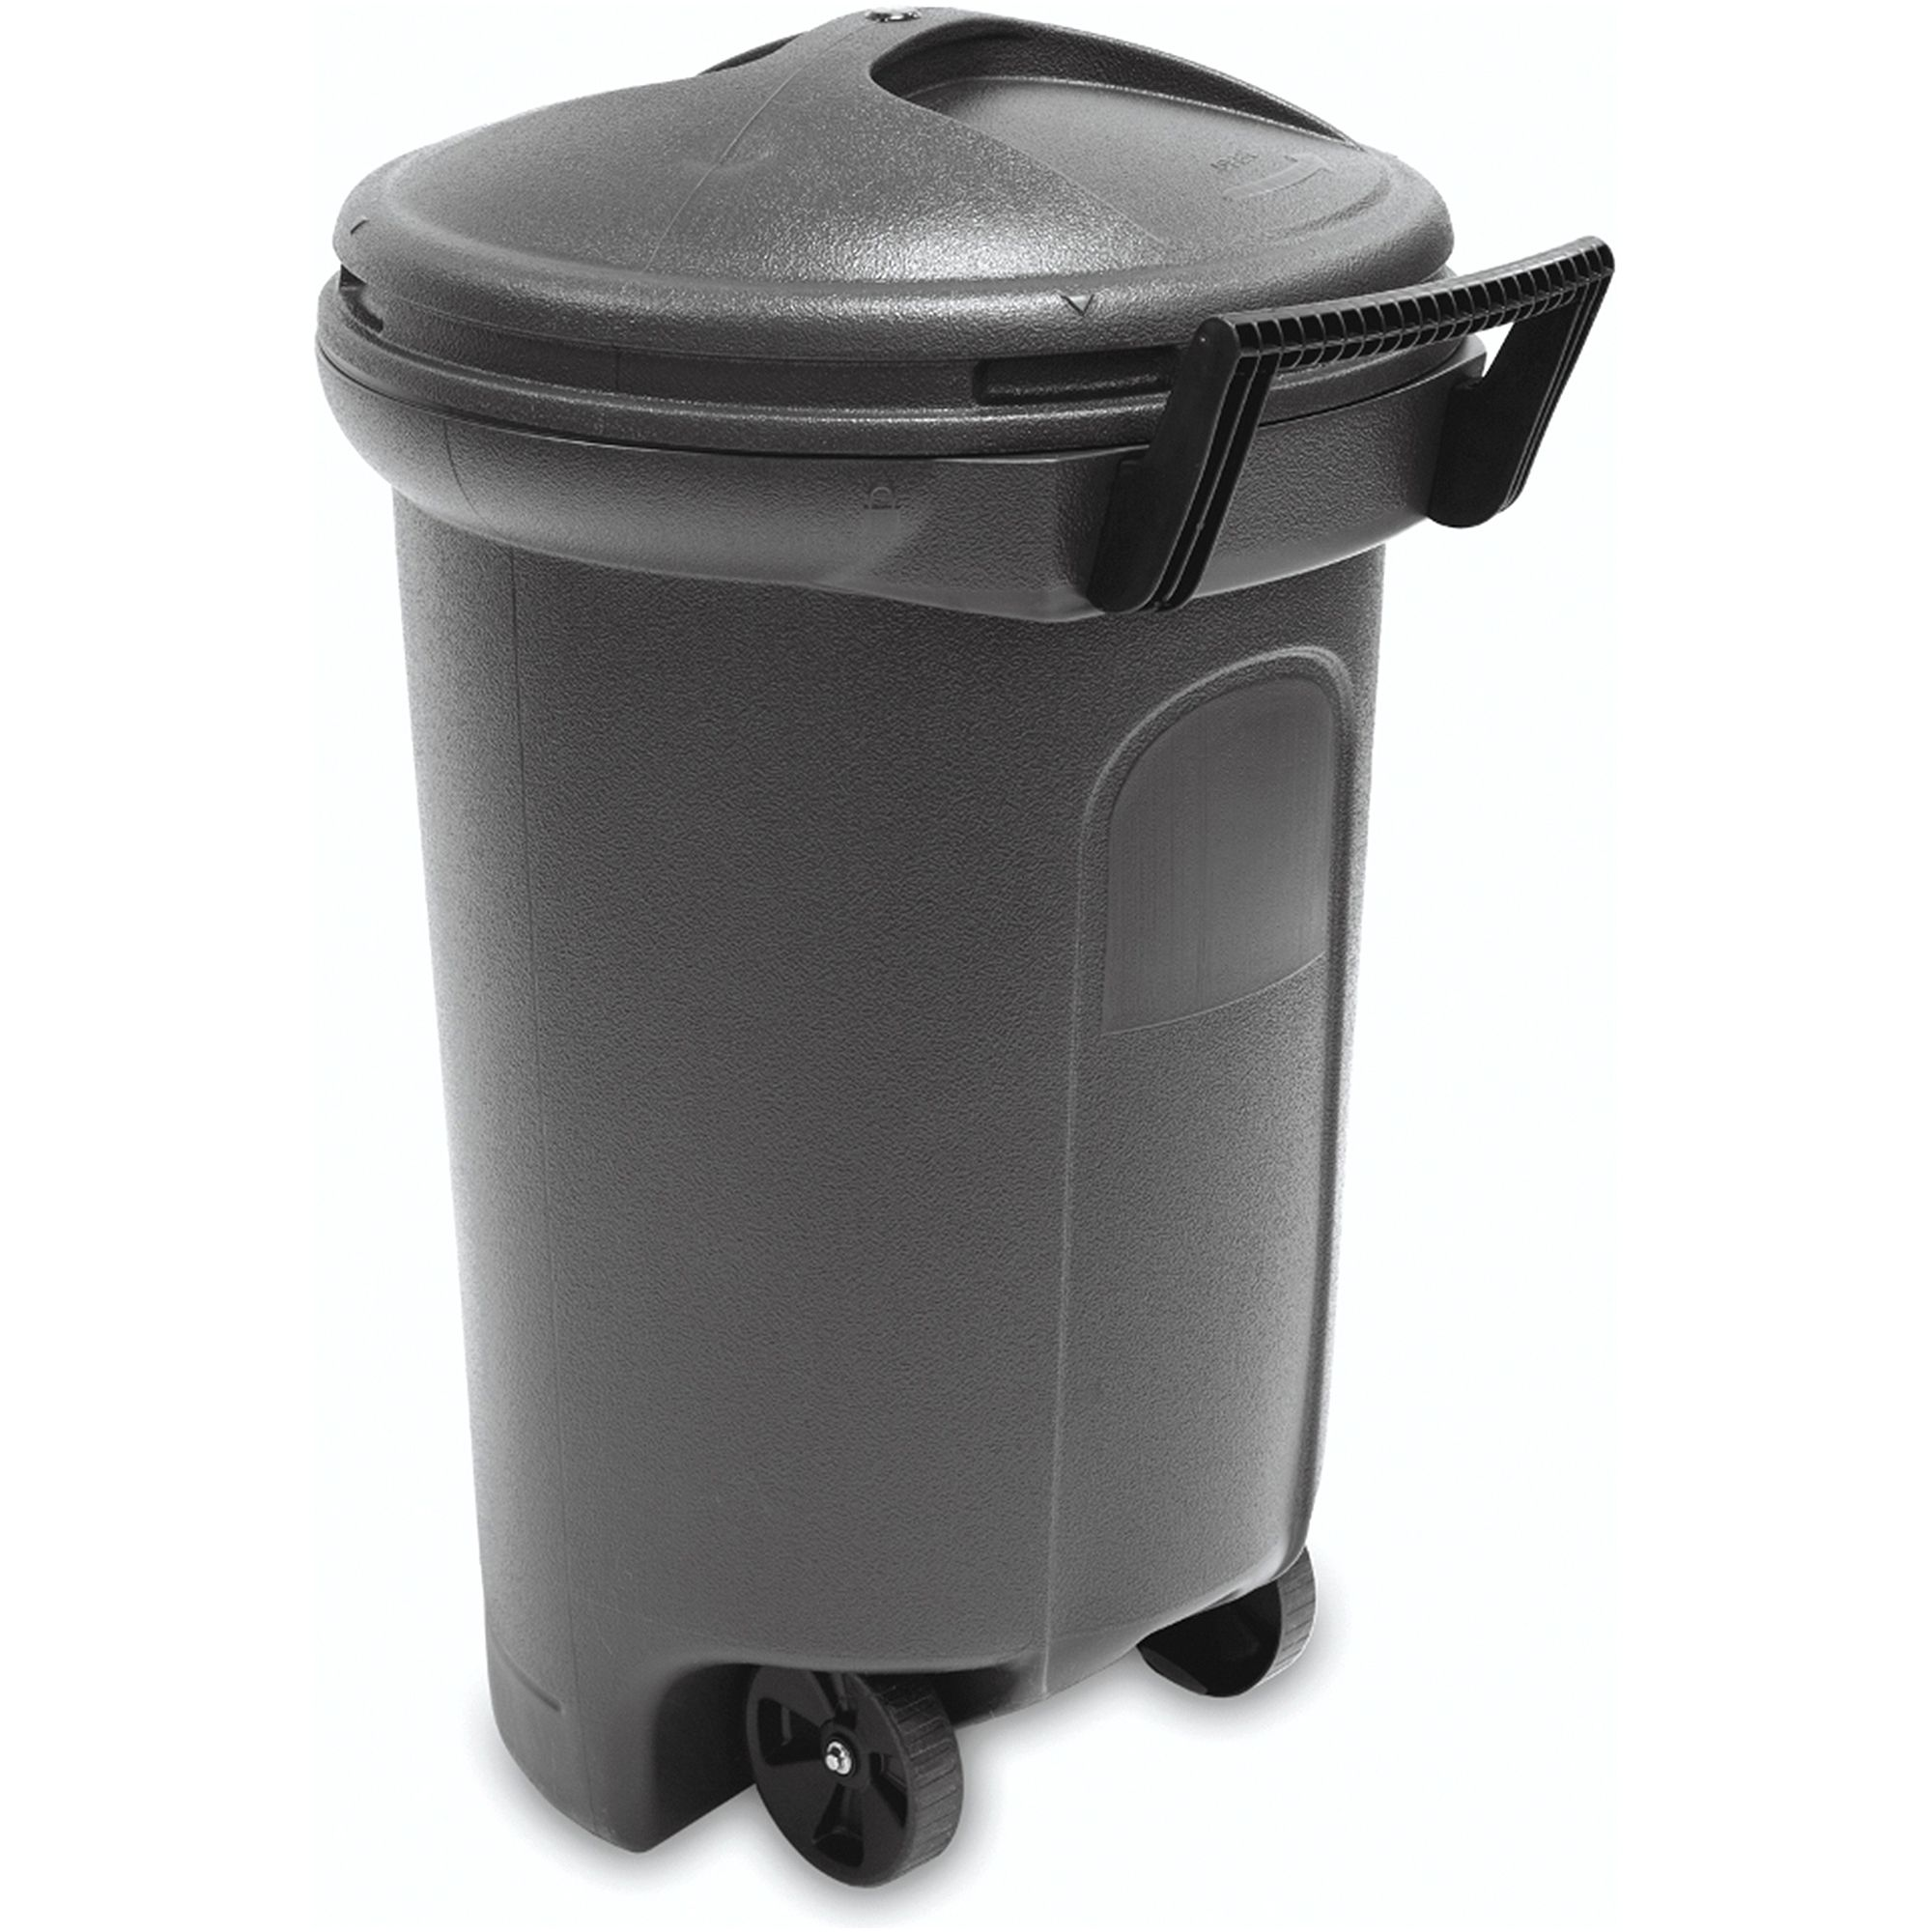 Walmart Trash Cans Outdoor New Outside Trash Cans With Wheels  Useful Itemsneeds  Pinterest  Wheels